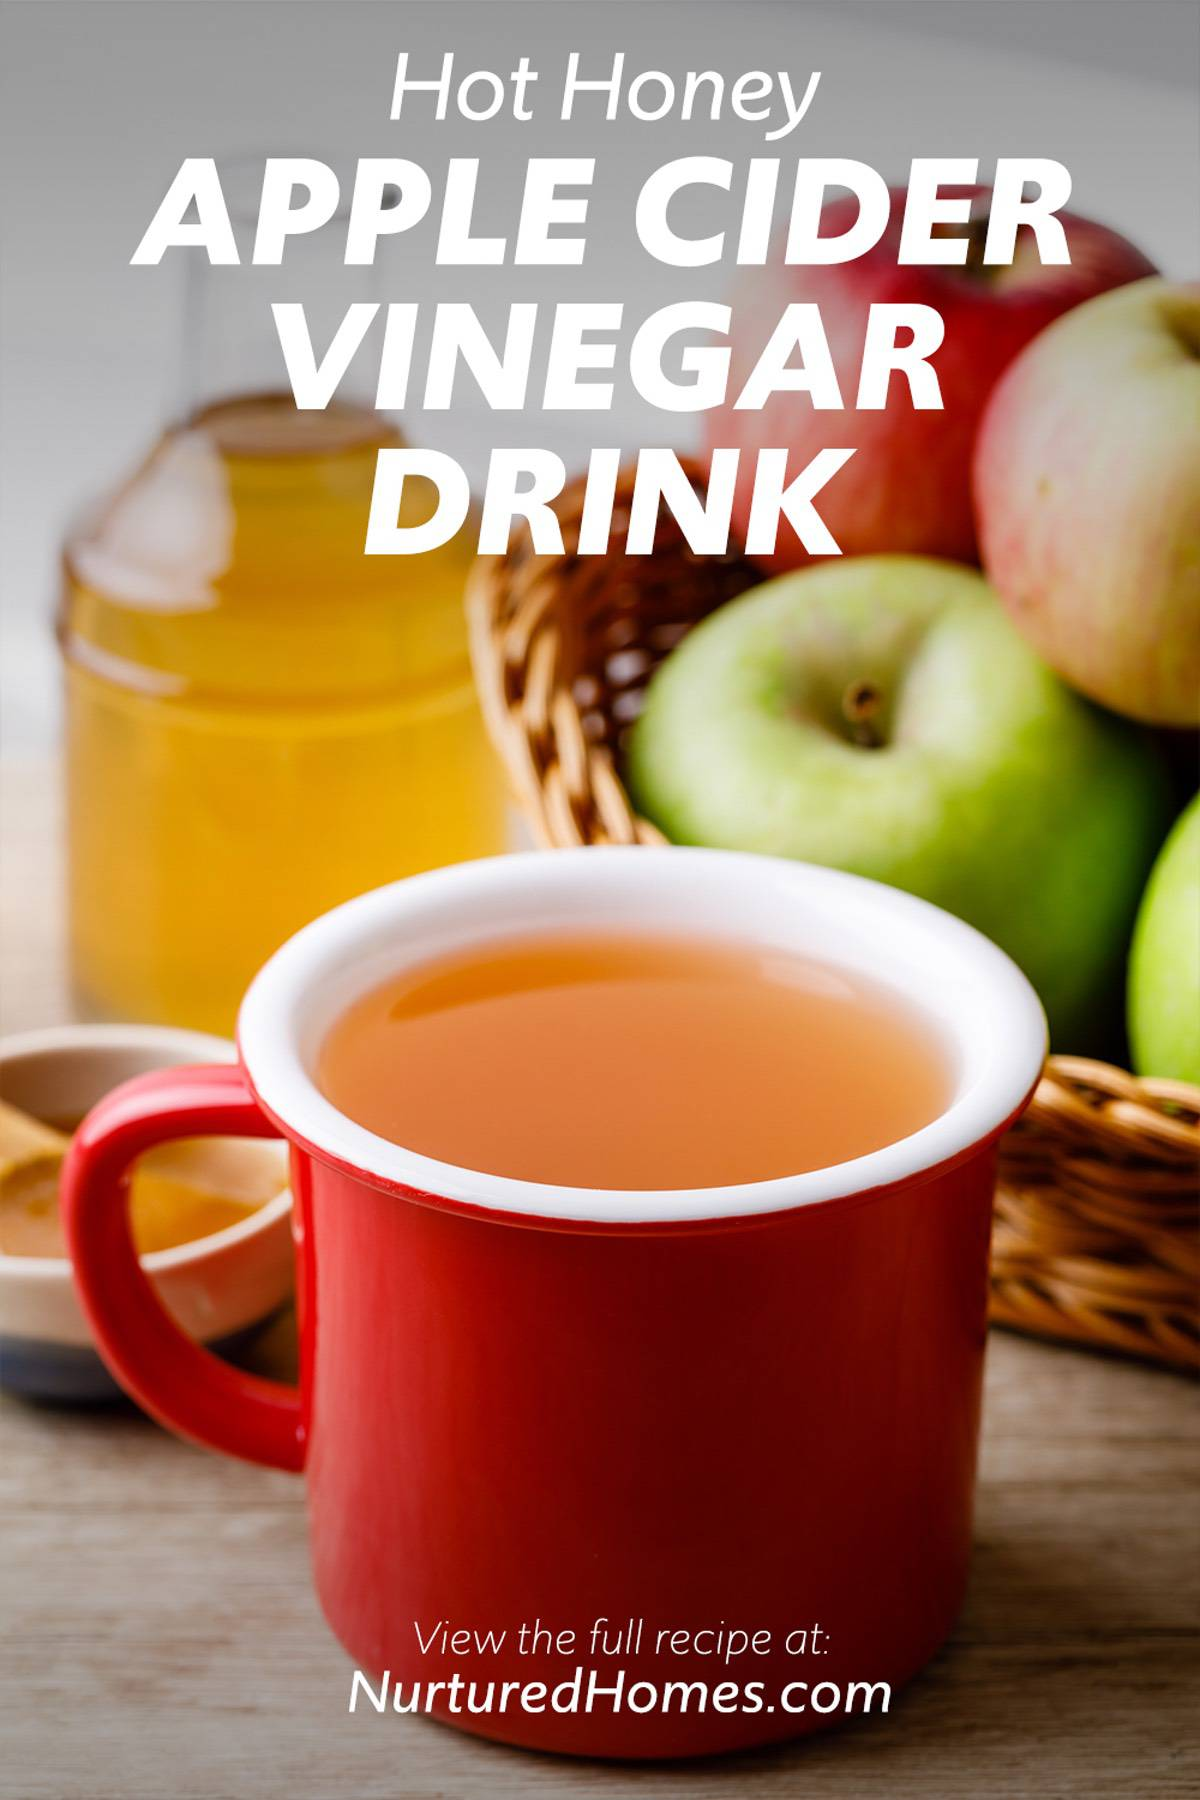 Hot Honey Apple Cider Vinegar Drink for Your Daily Bedtime Ritual